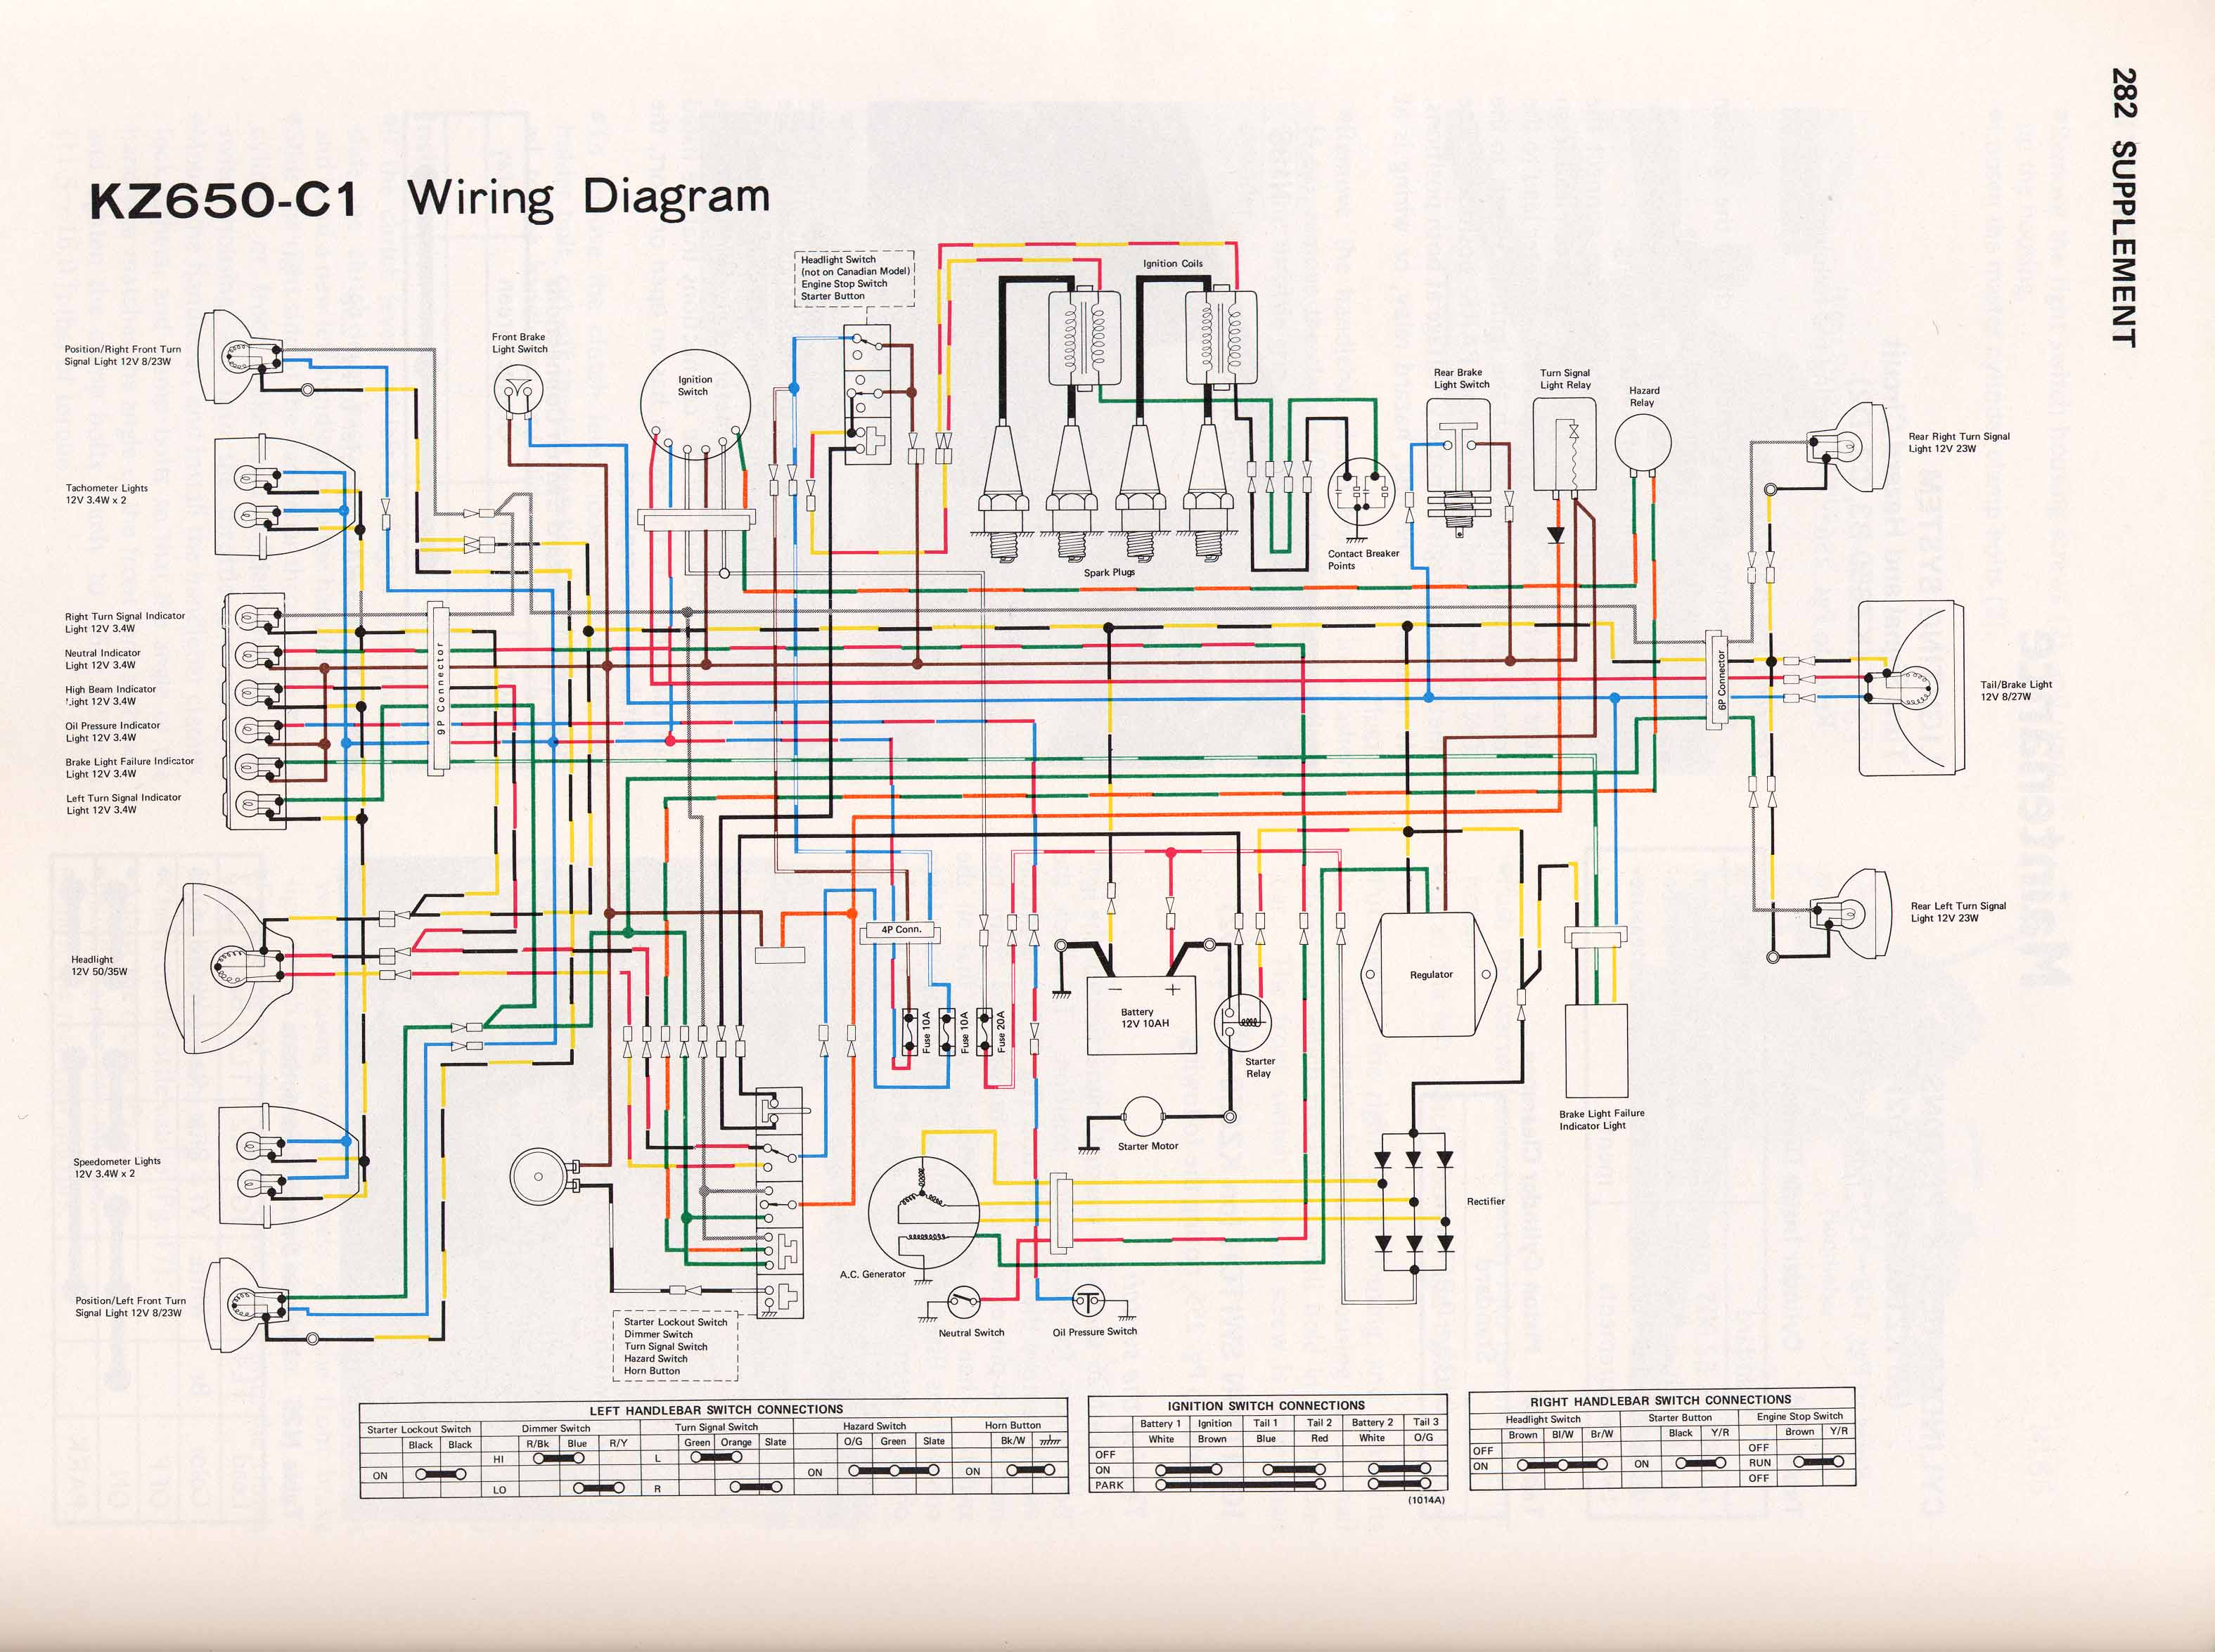 Kawasaki Z650 Wiring Harness Not Lossing Diagram Ninja 650 Engine 77 Kz650 Todays Rh 1 13 1813weddingbarn Com Z800